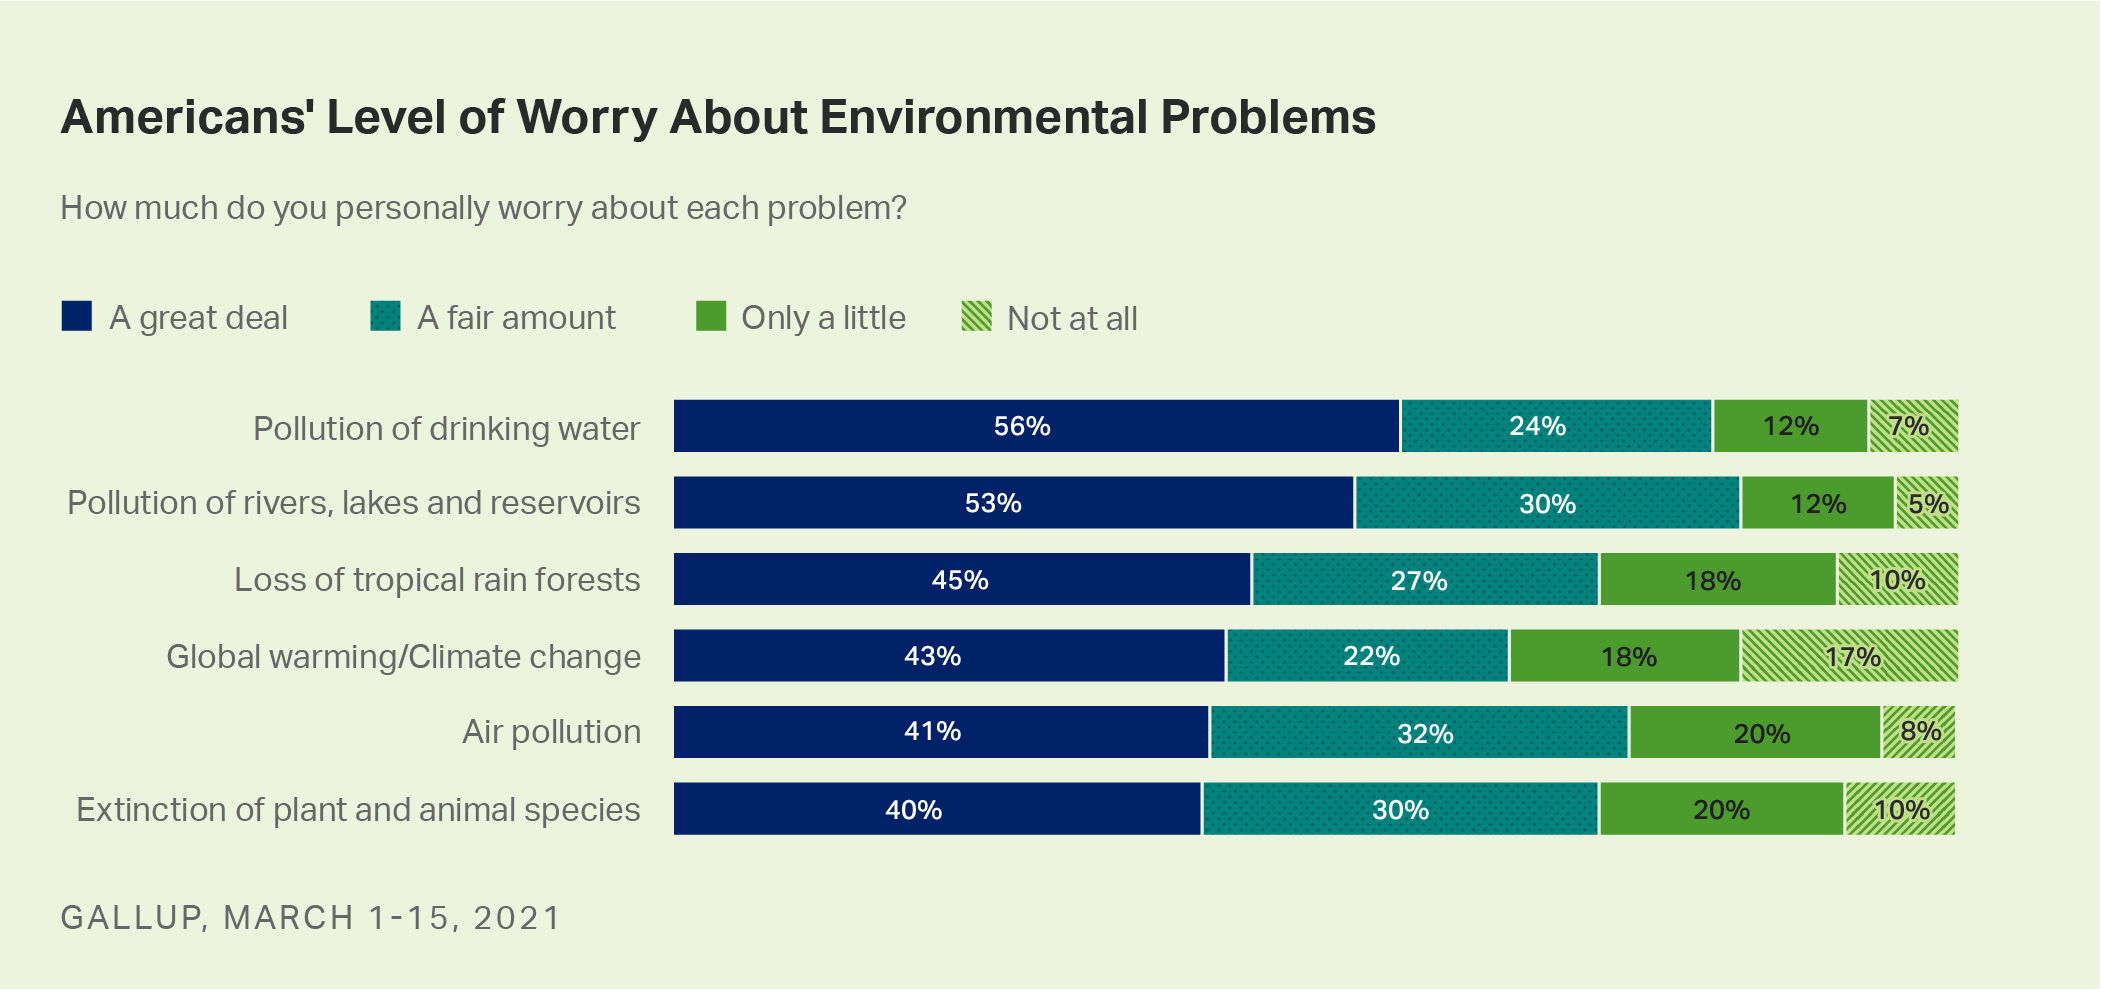 Water Pollution Remains Top Environmental Concern in U.S.